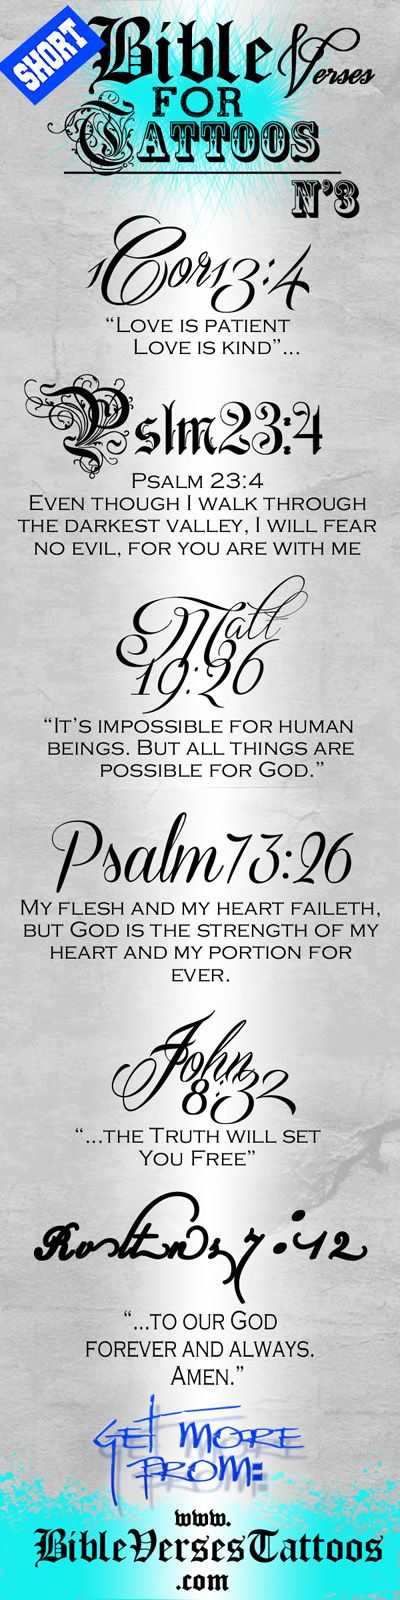 The Team of http://bibleversestattoos.com/ Has Designed These Beautiful Unique *Short* Bible Verses for Tattoos so You Can Print Them and Bring Them to Your Tattoo Artist... Just Go & Grab Them NOW!... :) #bibleversestattoos #bibleversestattoos #versestattoos #scripturetattoo #scripturetattoos #tattoo #tattoos #shortversestattoos #smalltattoo #tattooforgirl #foottattoodesigns #girlfoottattoos #tattoosonthefootforgirls #smallfoottattoo #tattoosonfootforgirls #foottattoosforgirls